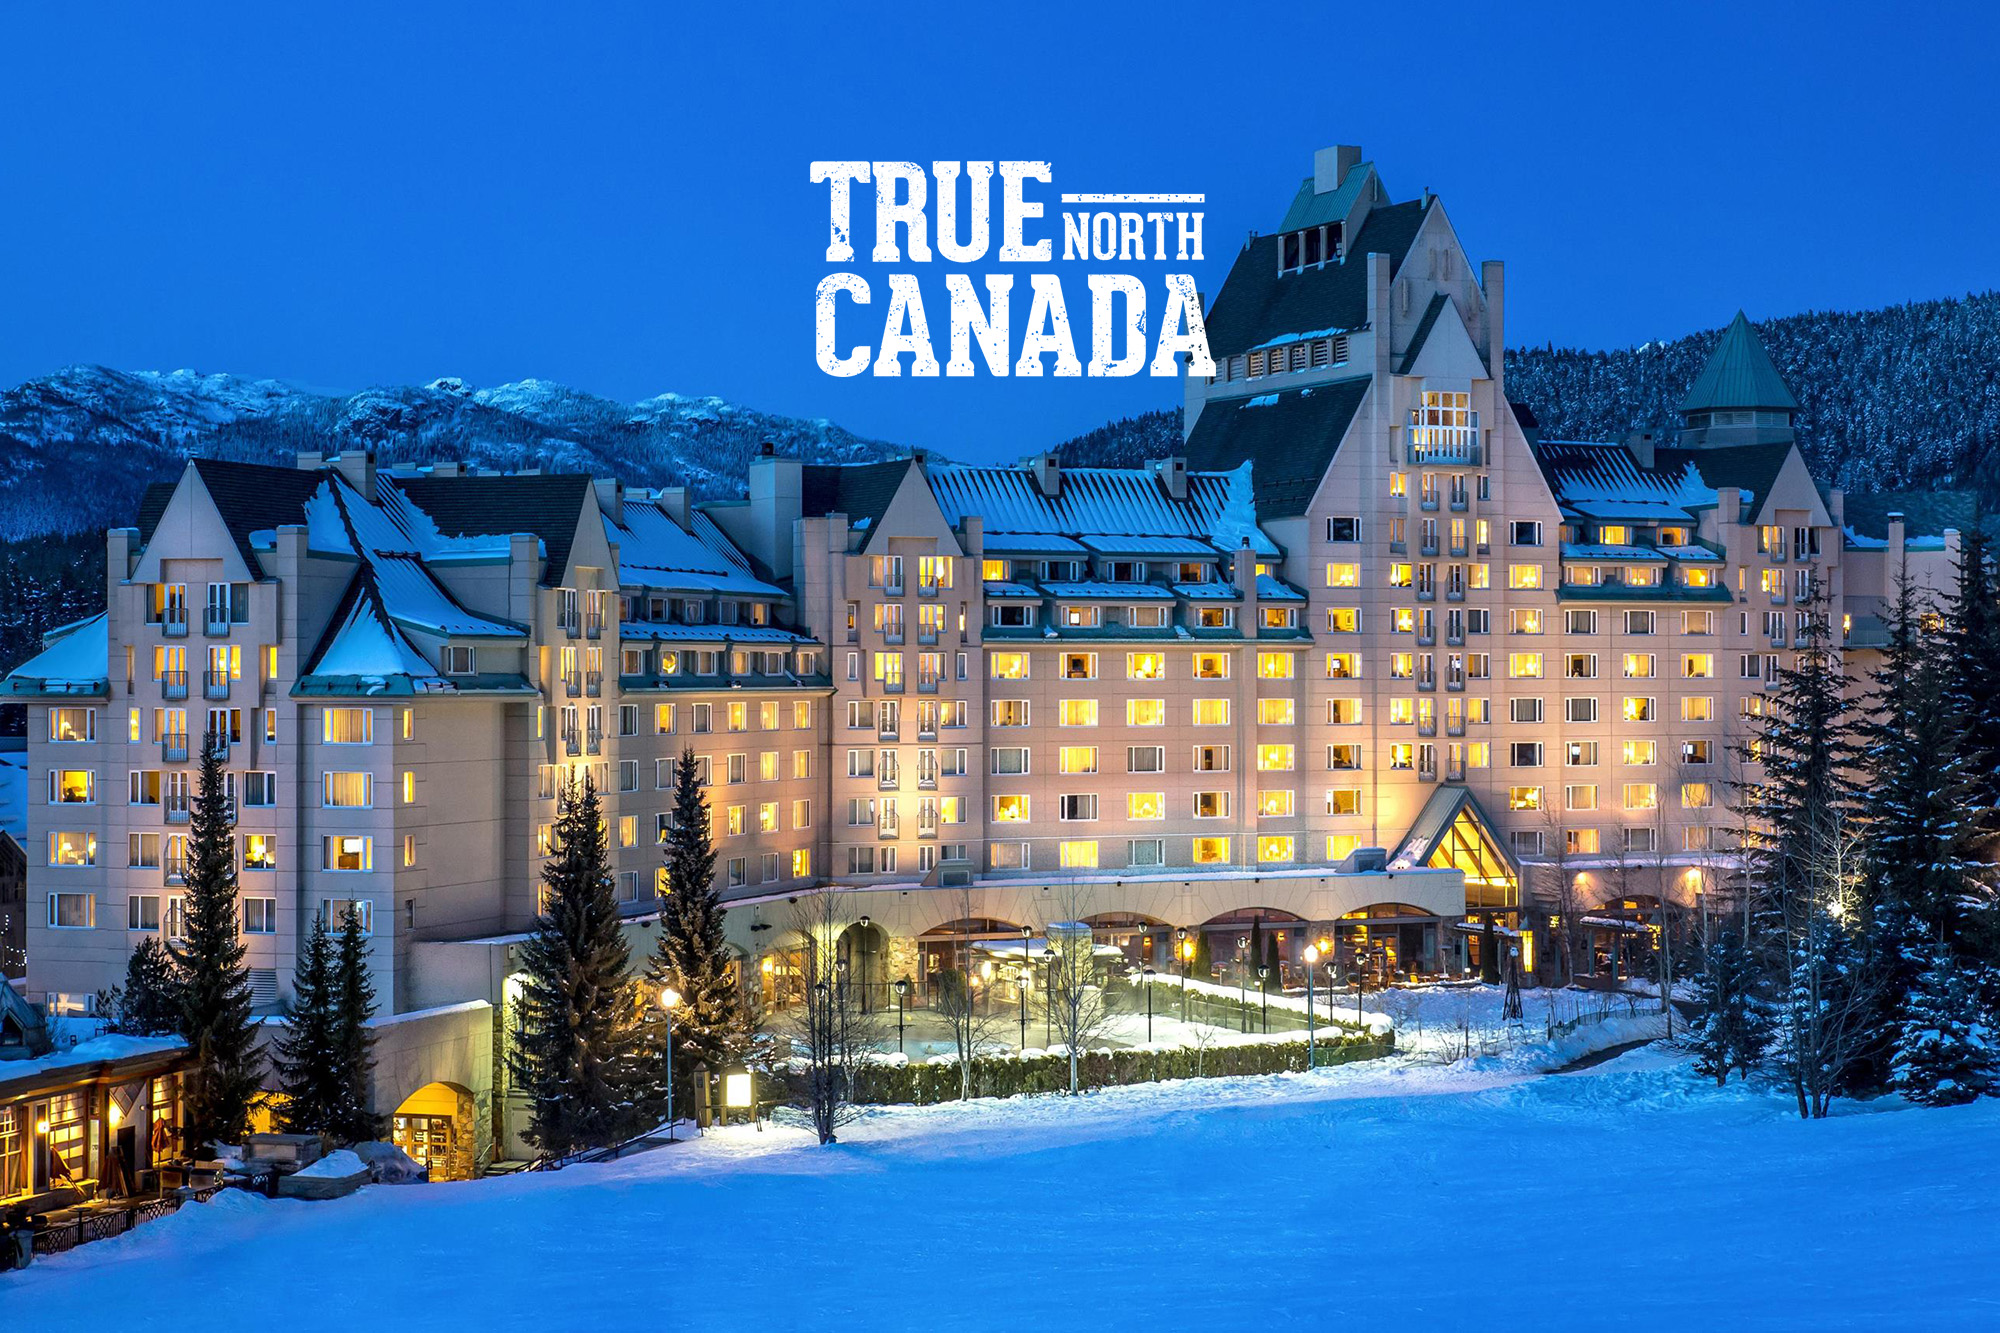 Winter Wonderland at night in Fairmont Chateau Whistler